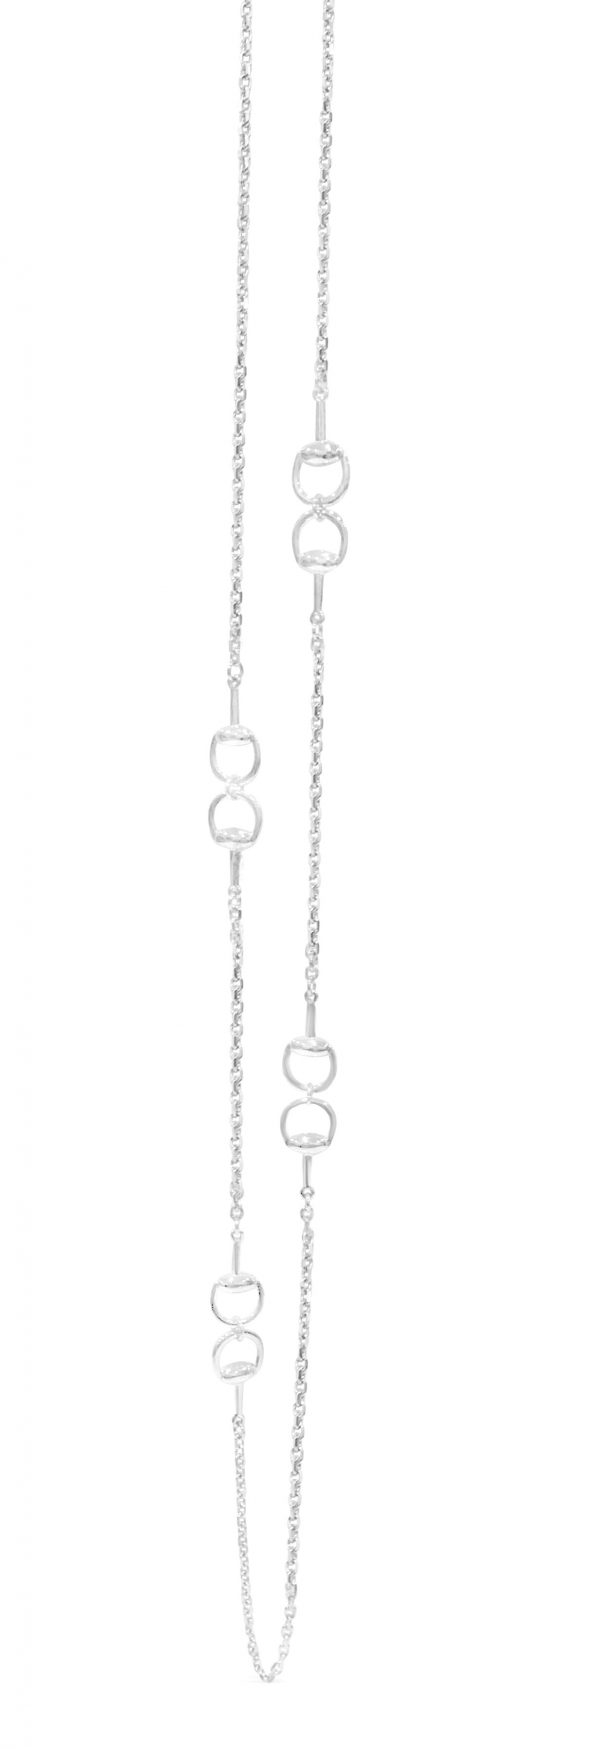 ABSOLUTE N575SL NECKLACE